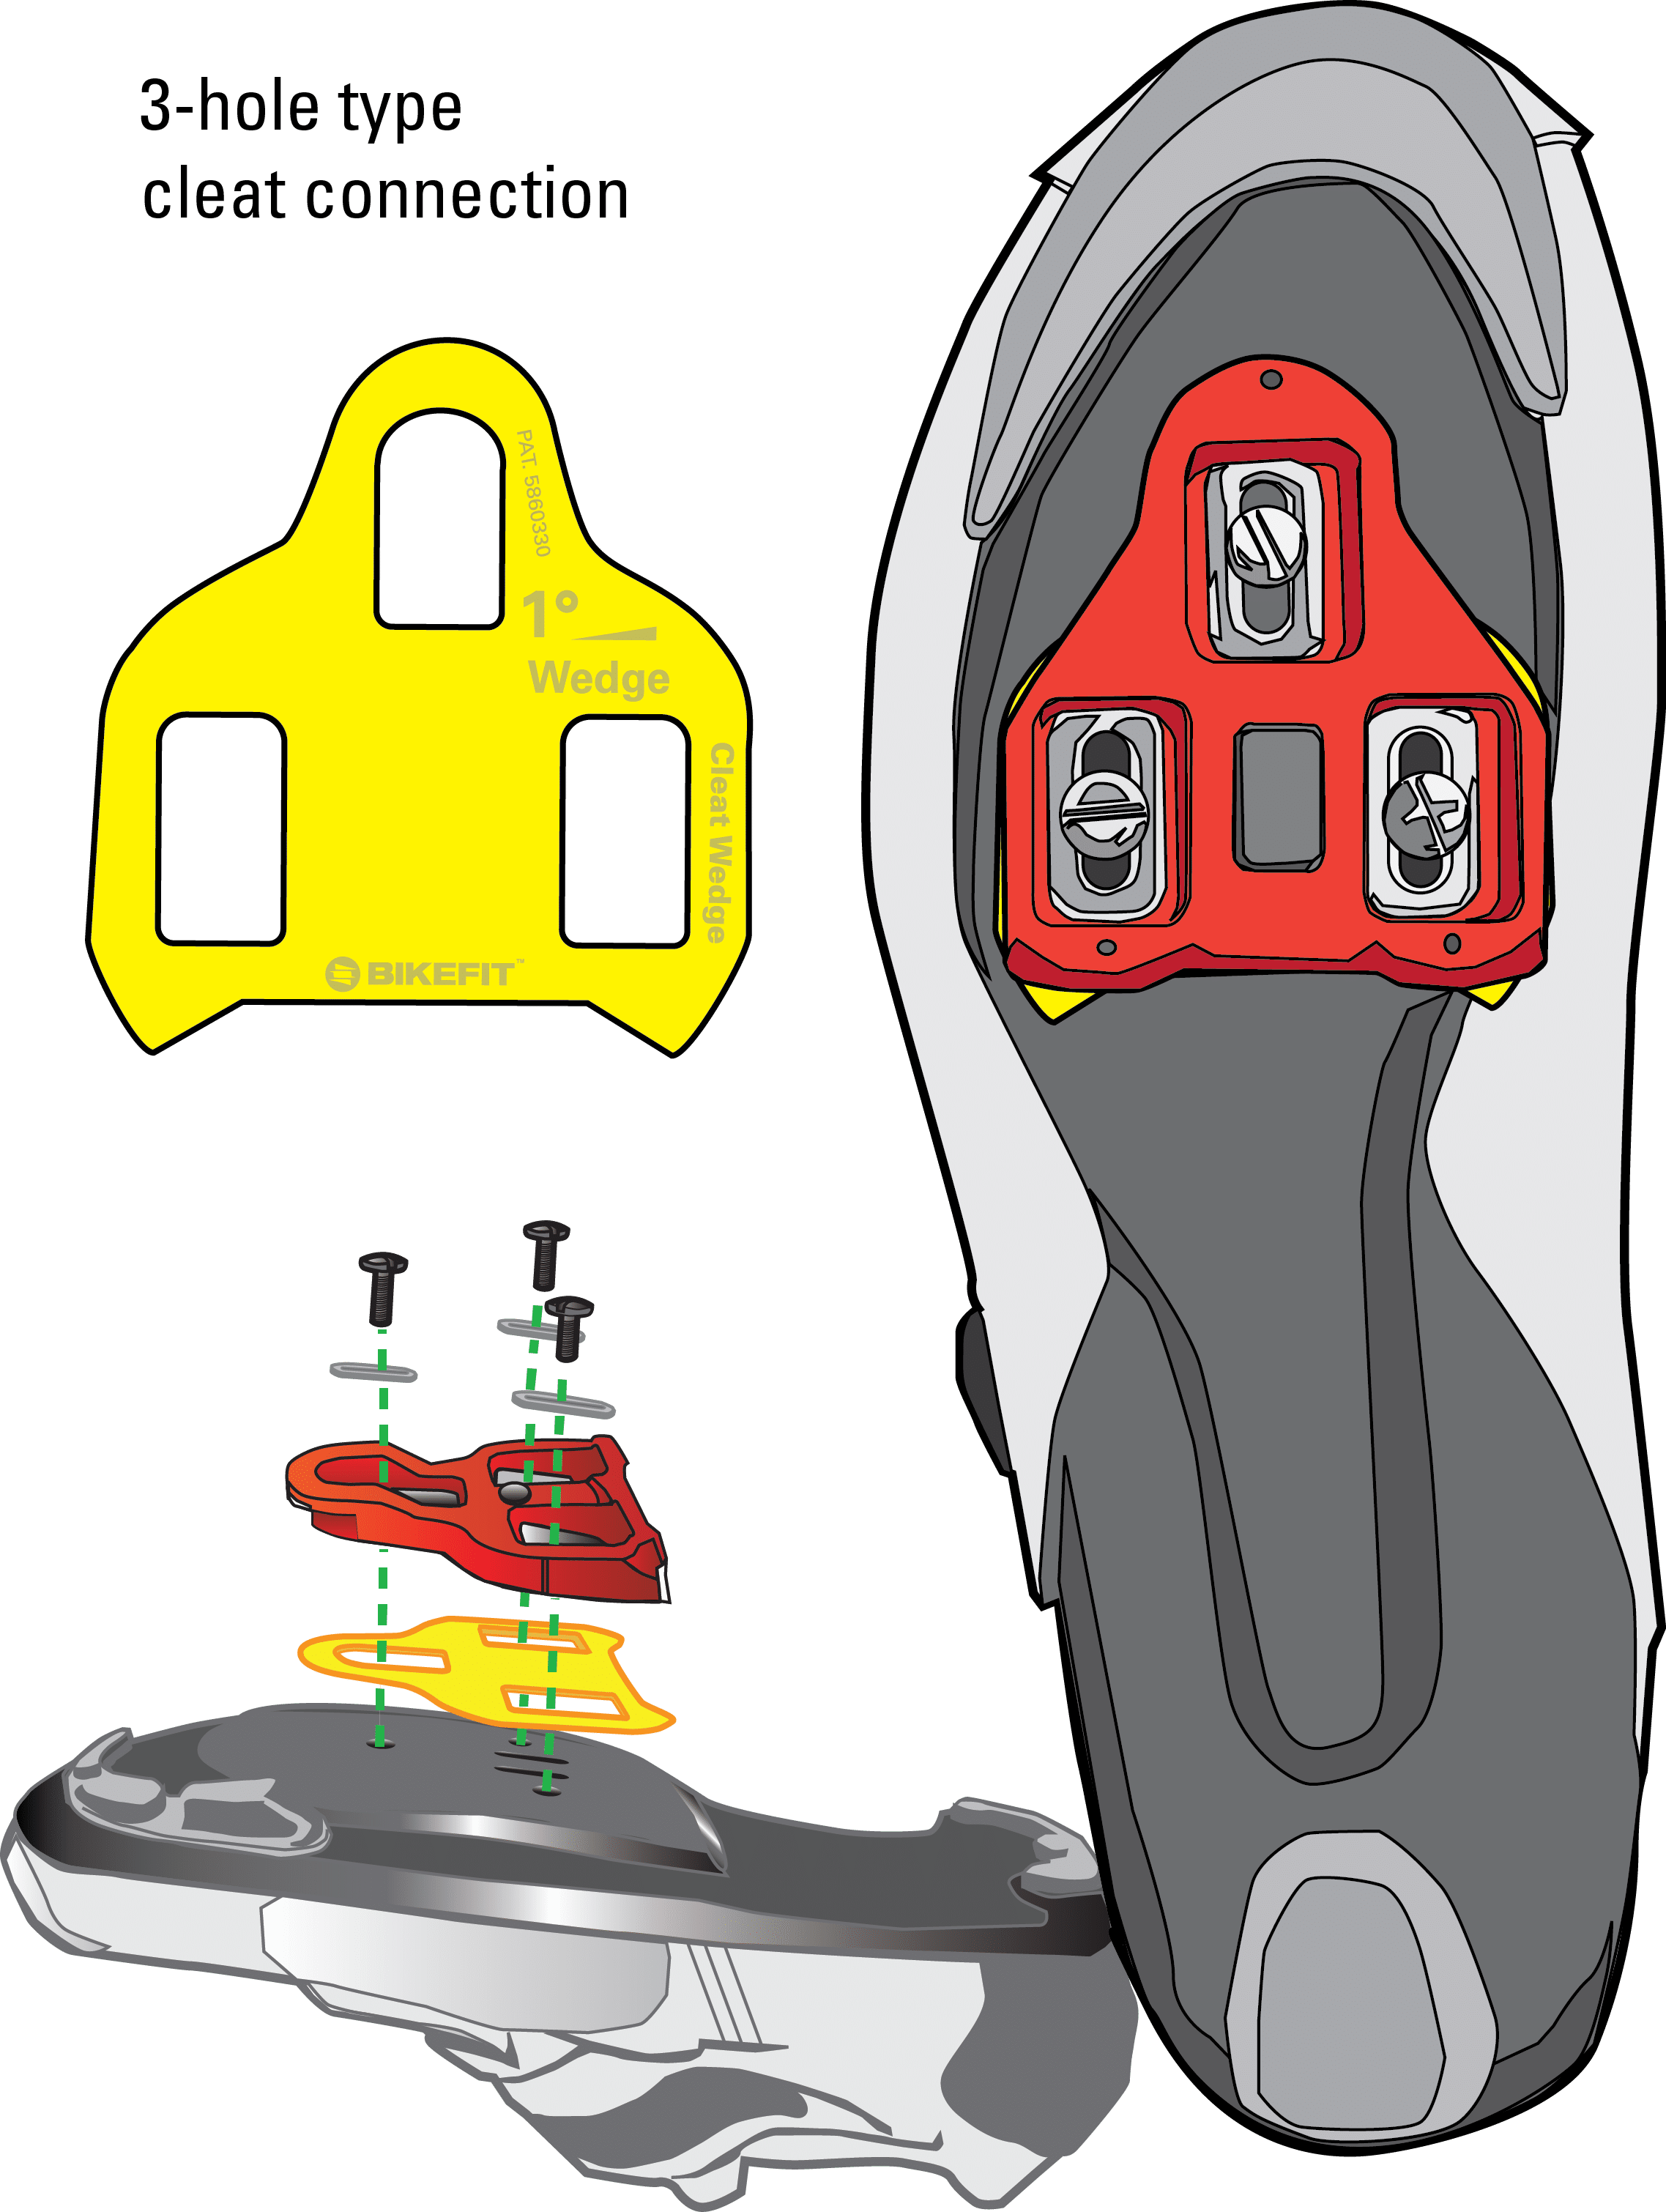 bicycle cleats look wedge